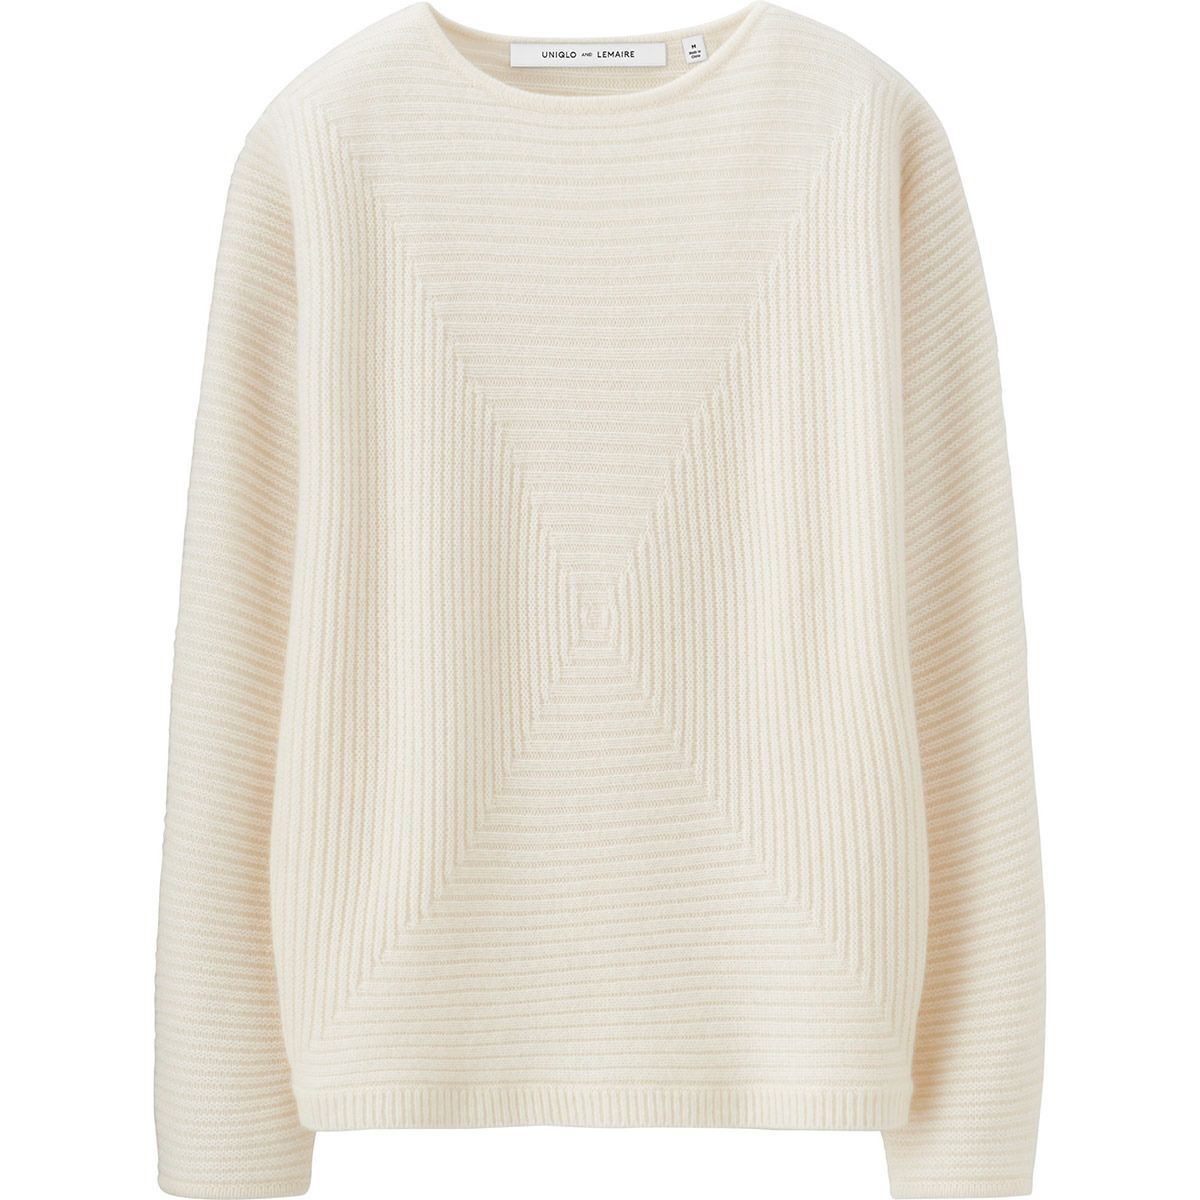 UNIQLO \\ LEMAIRE Cashmere blended square sweater